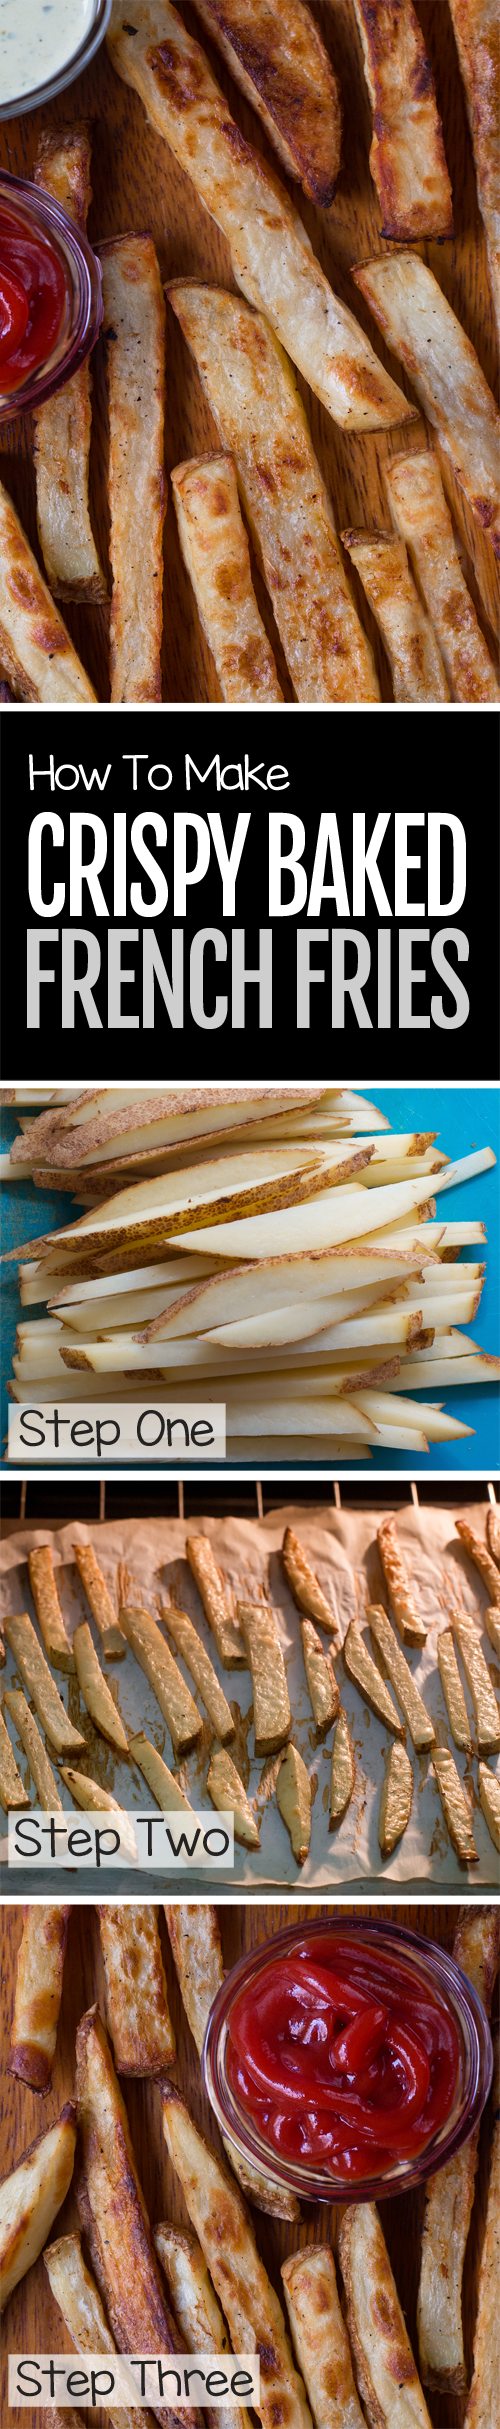 Thick-cut & addictively crispy baked fries from scratch, no frying required!